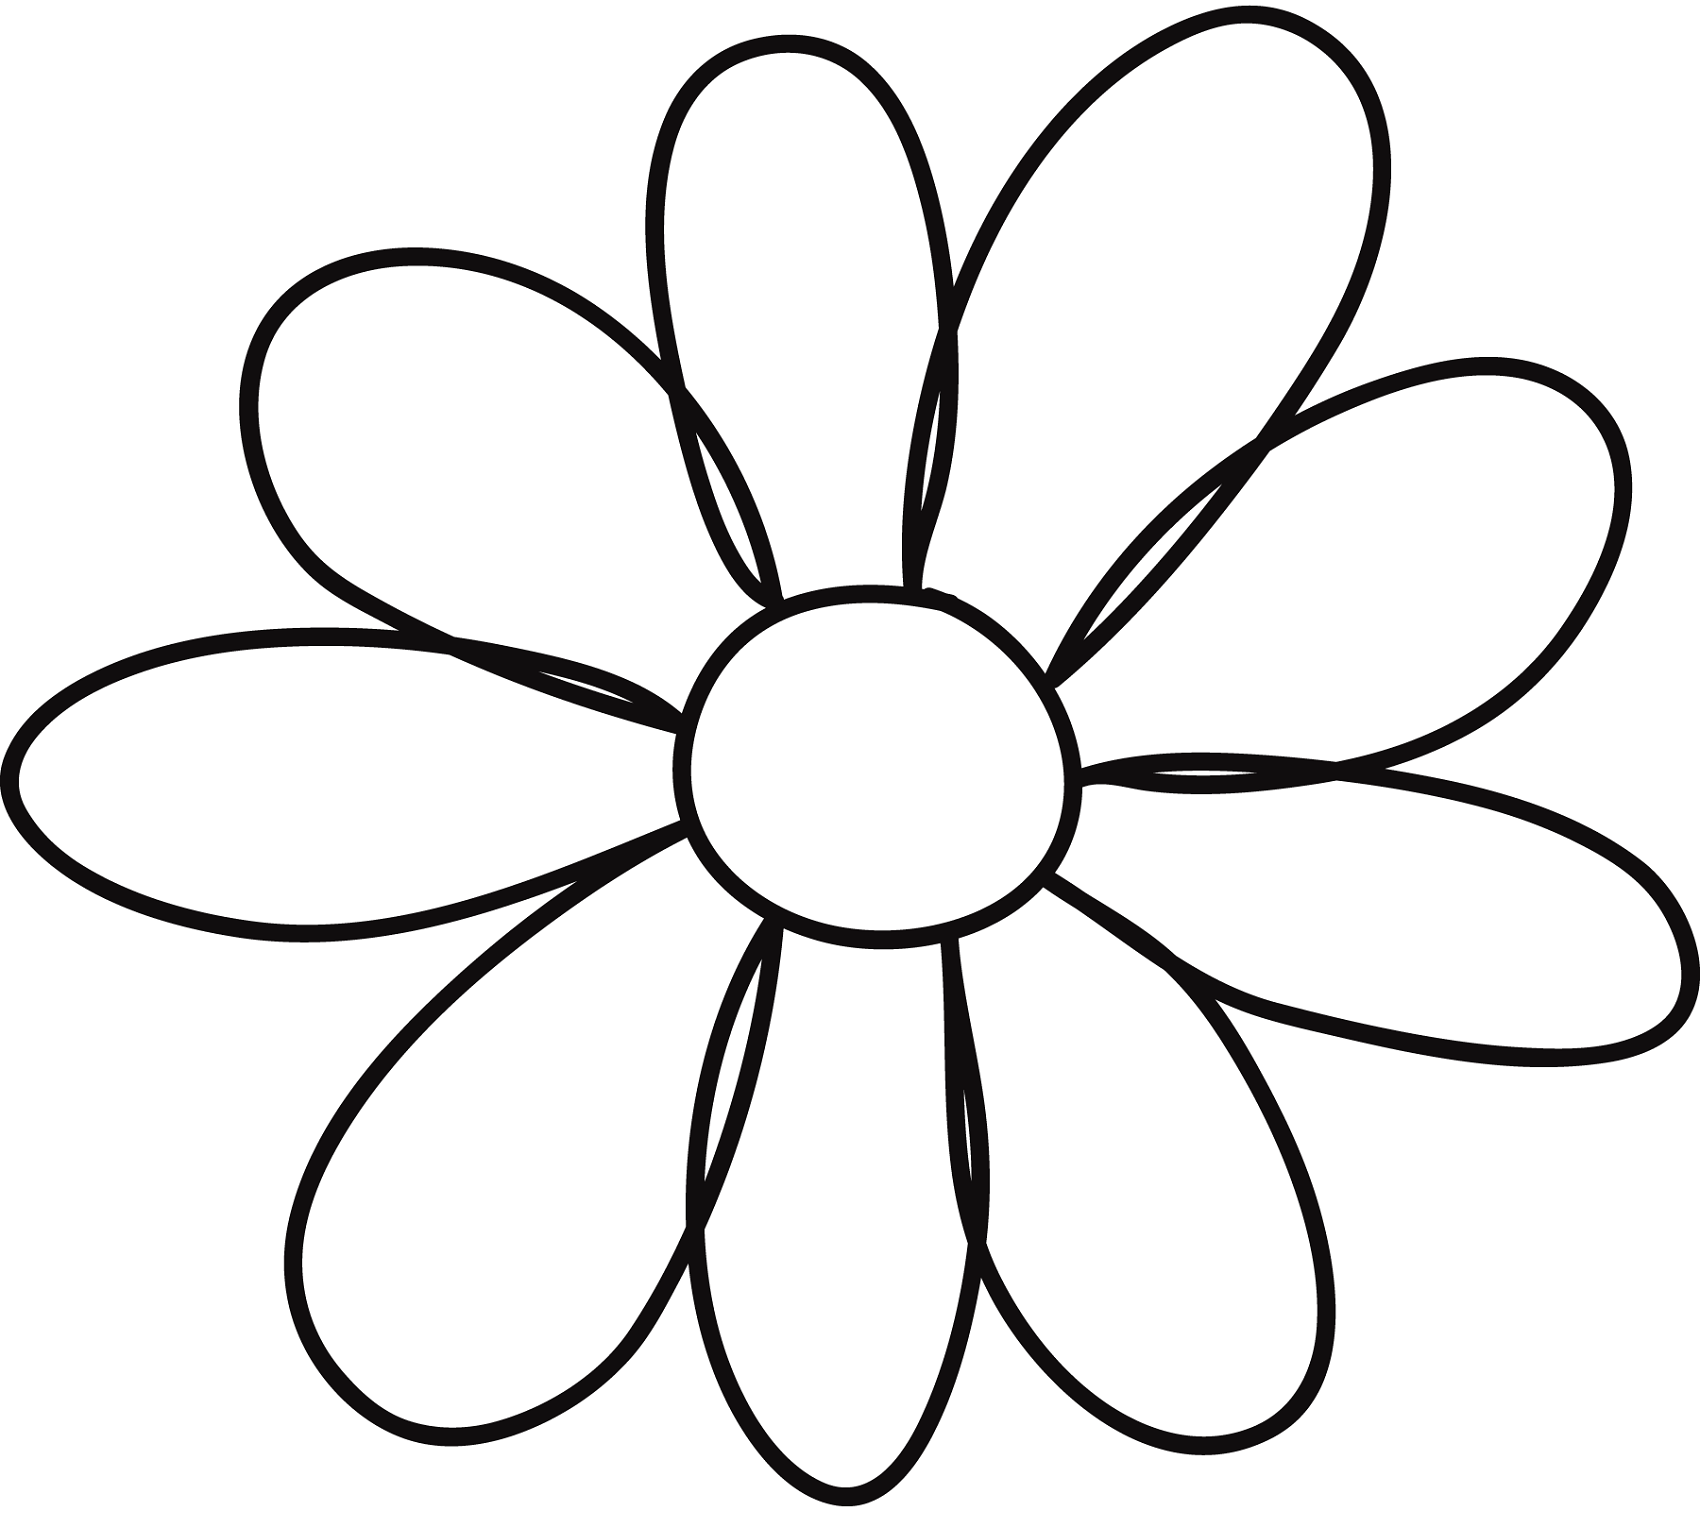 flower templates for coloring top 47 free printable flowers coloring pages online templates for coloring flower